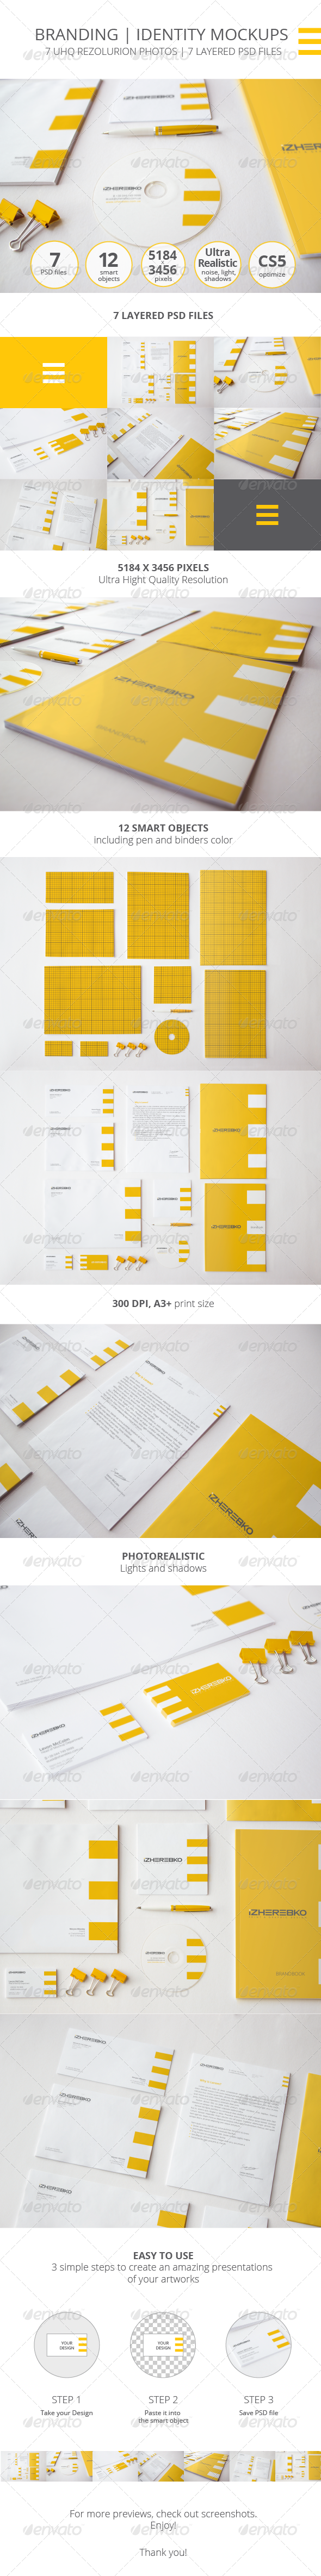 GraphicRiver Branding Identity Photorealistic Mock-up 7954551